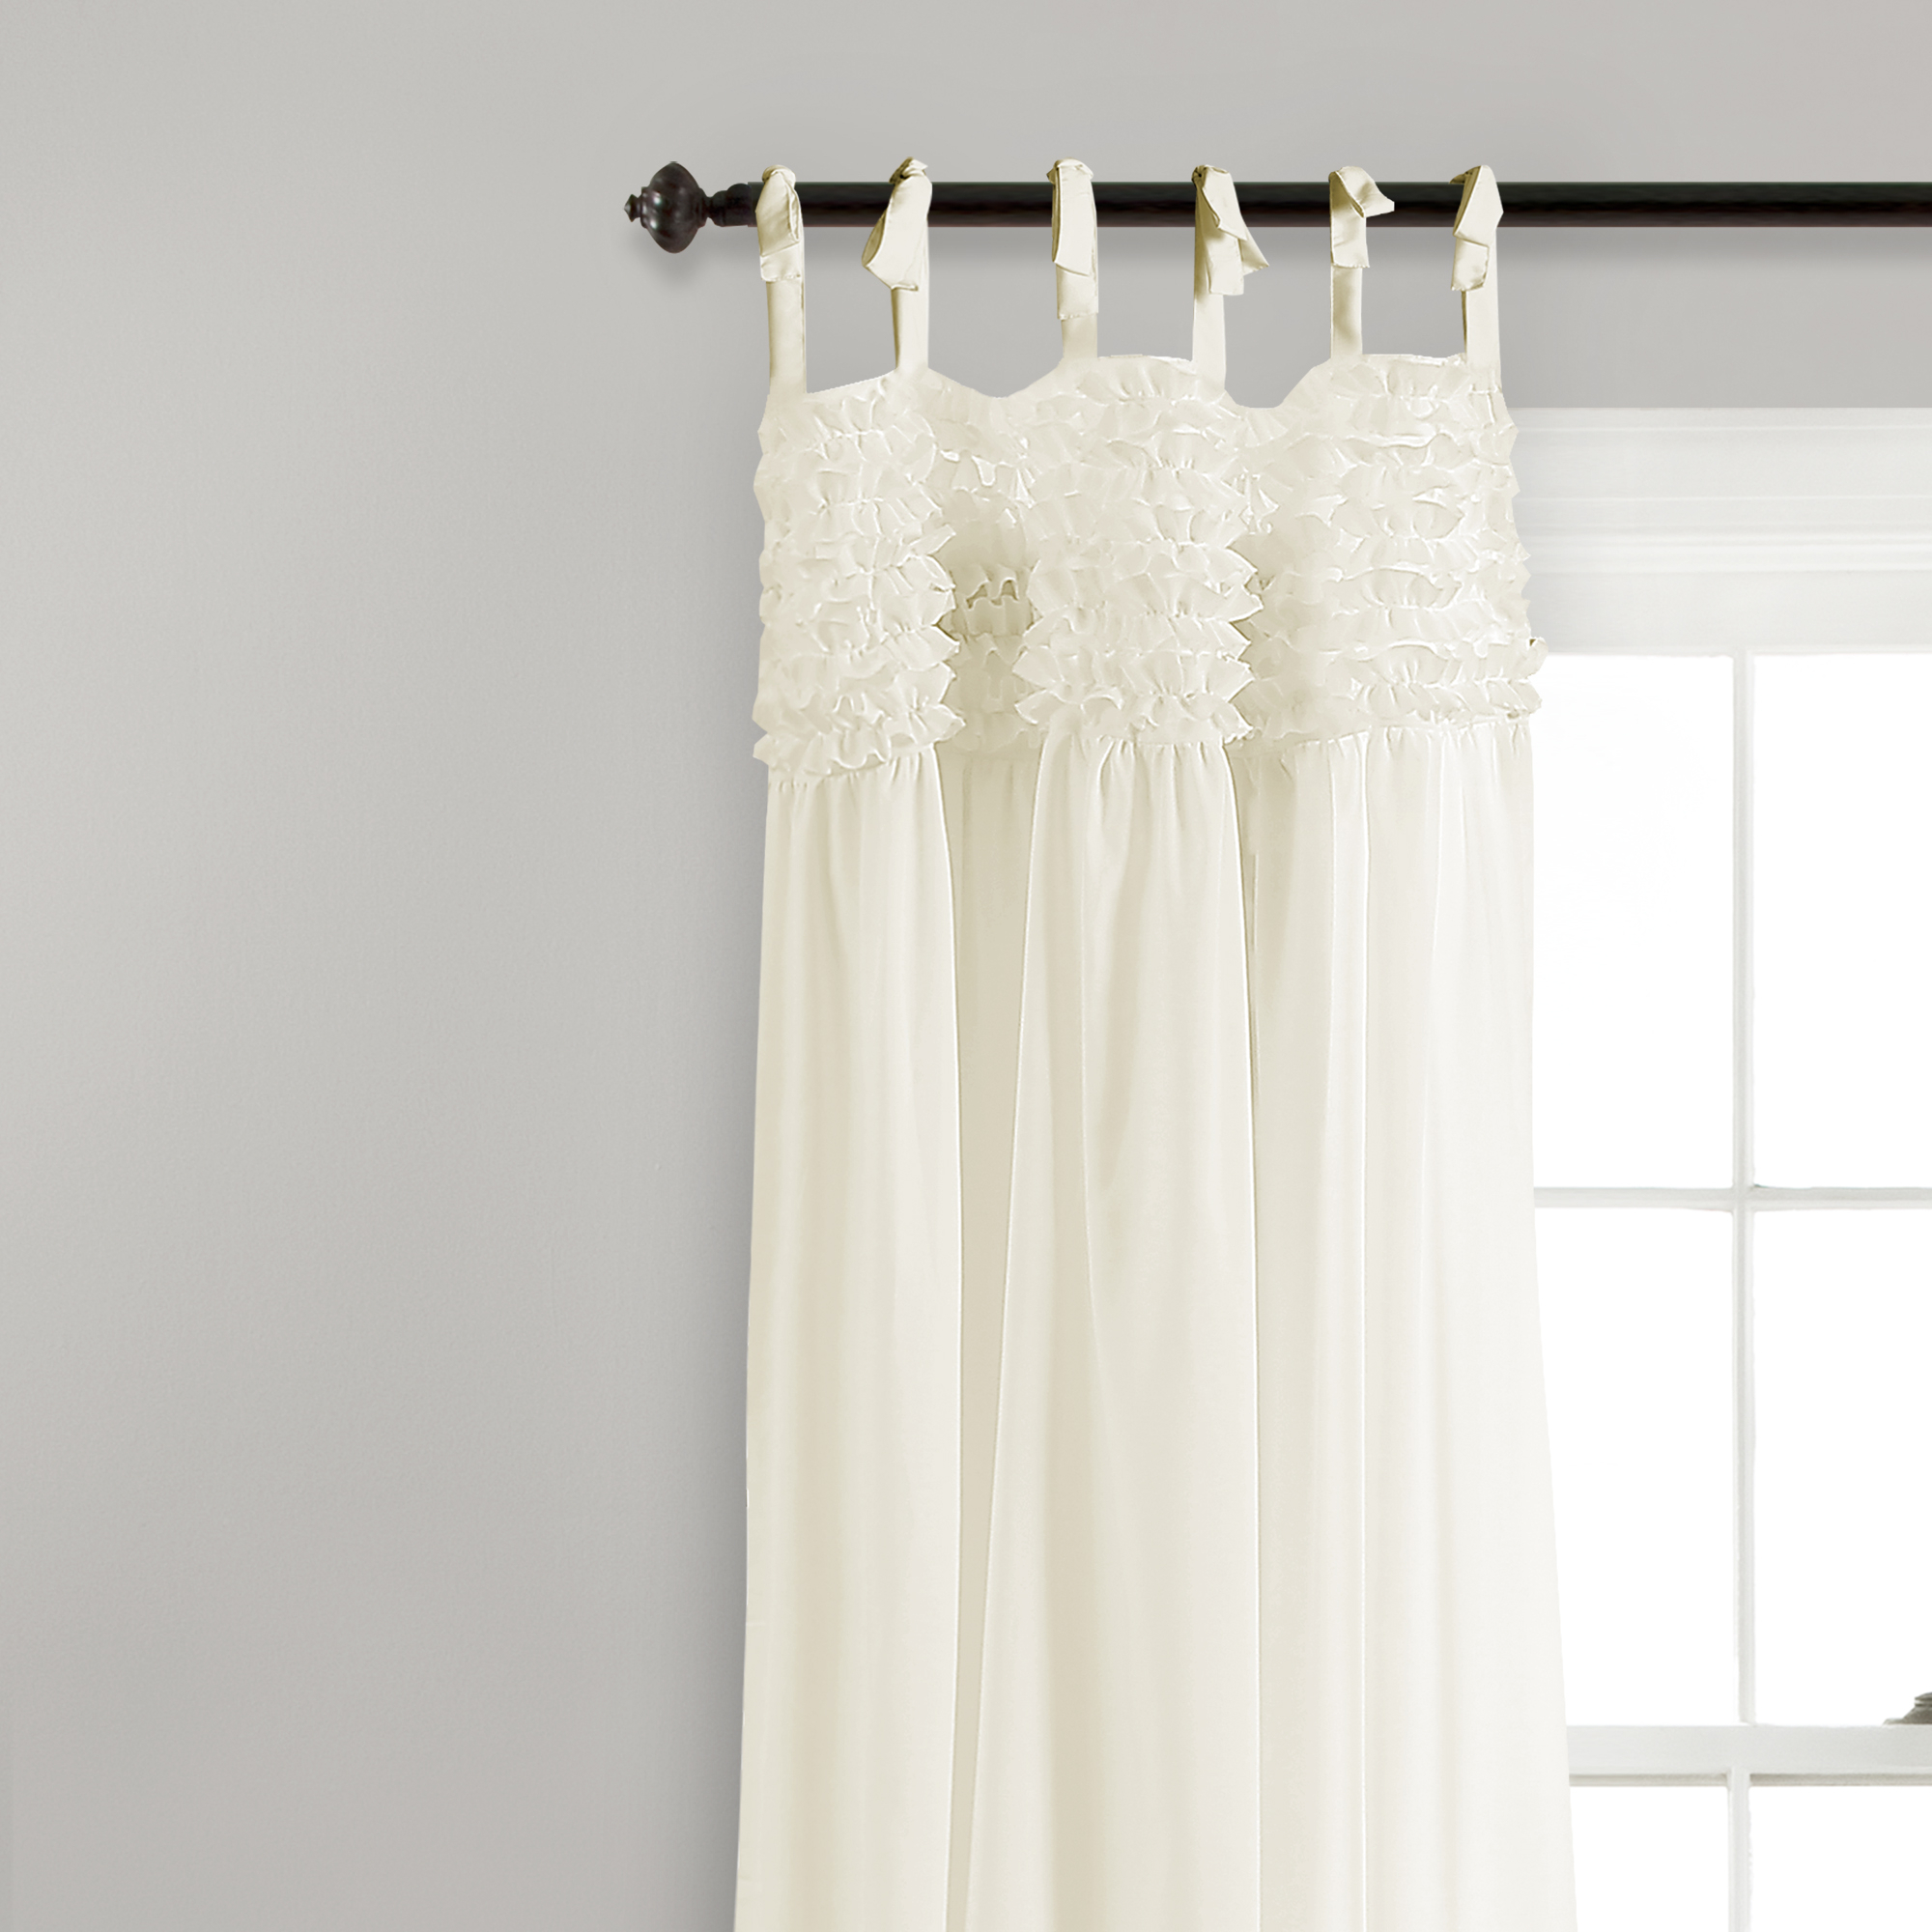 Best And Newest Details About Lydia Ruffle Window Curtain Panels Ivory Set 40X84 Pertaining To Lydia Ruffle Window Curtain Panel Pairs (View 4 of 20)